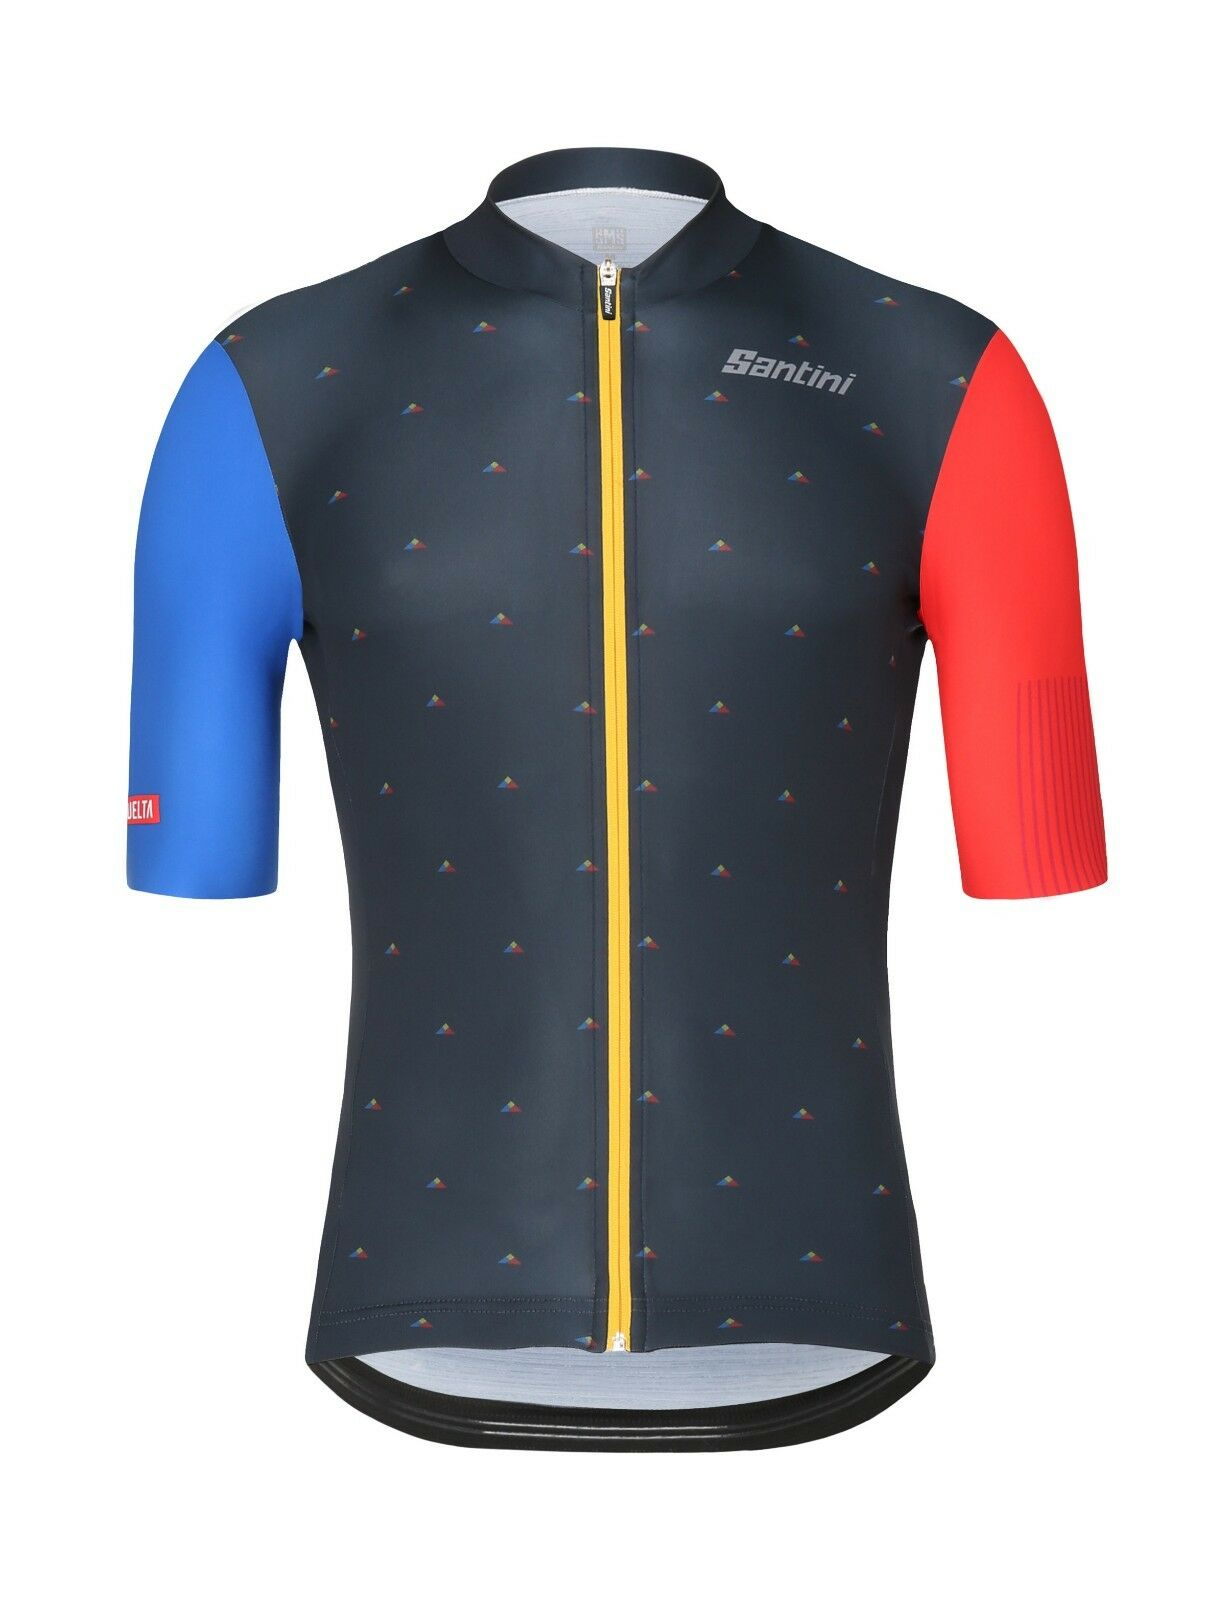 2018 La Vuelta  Andorra Cycling Jersey: Made in  by Santini